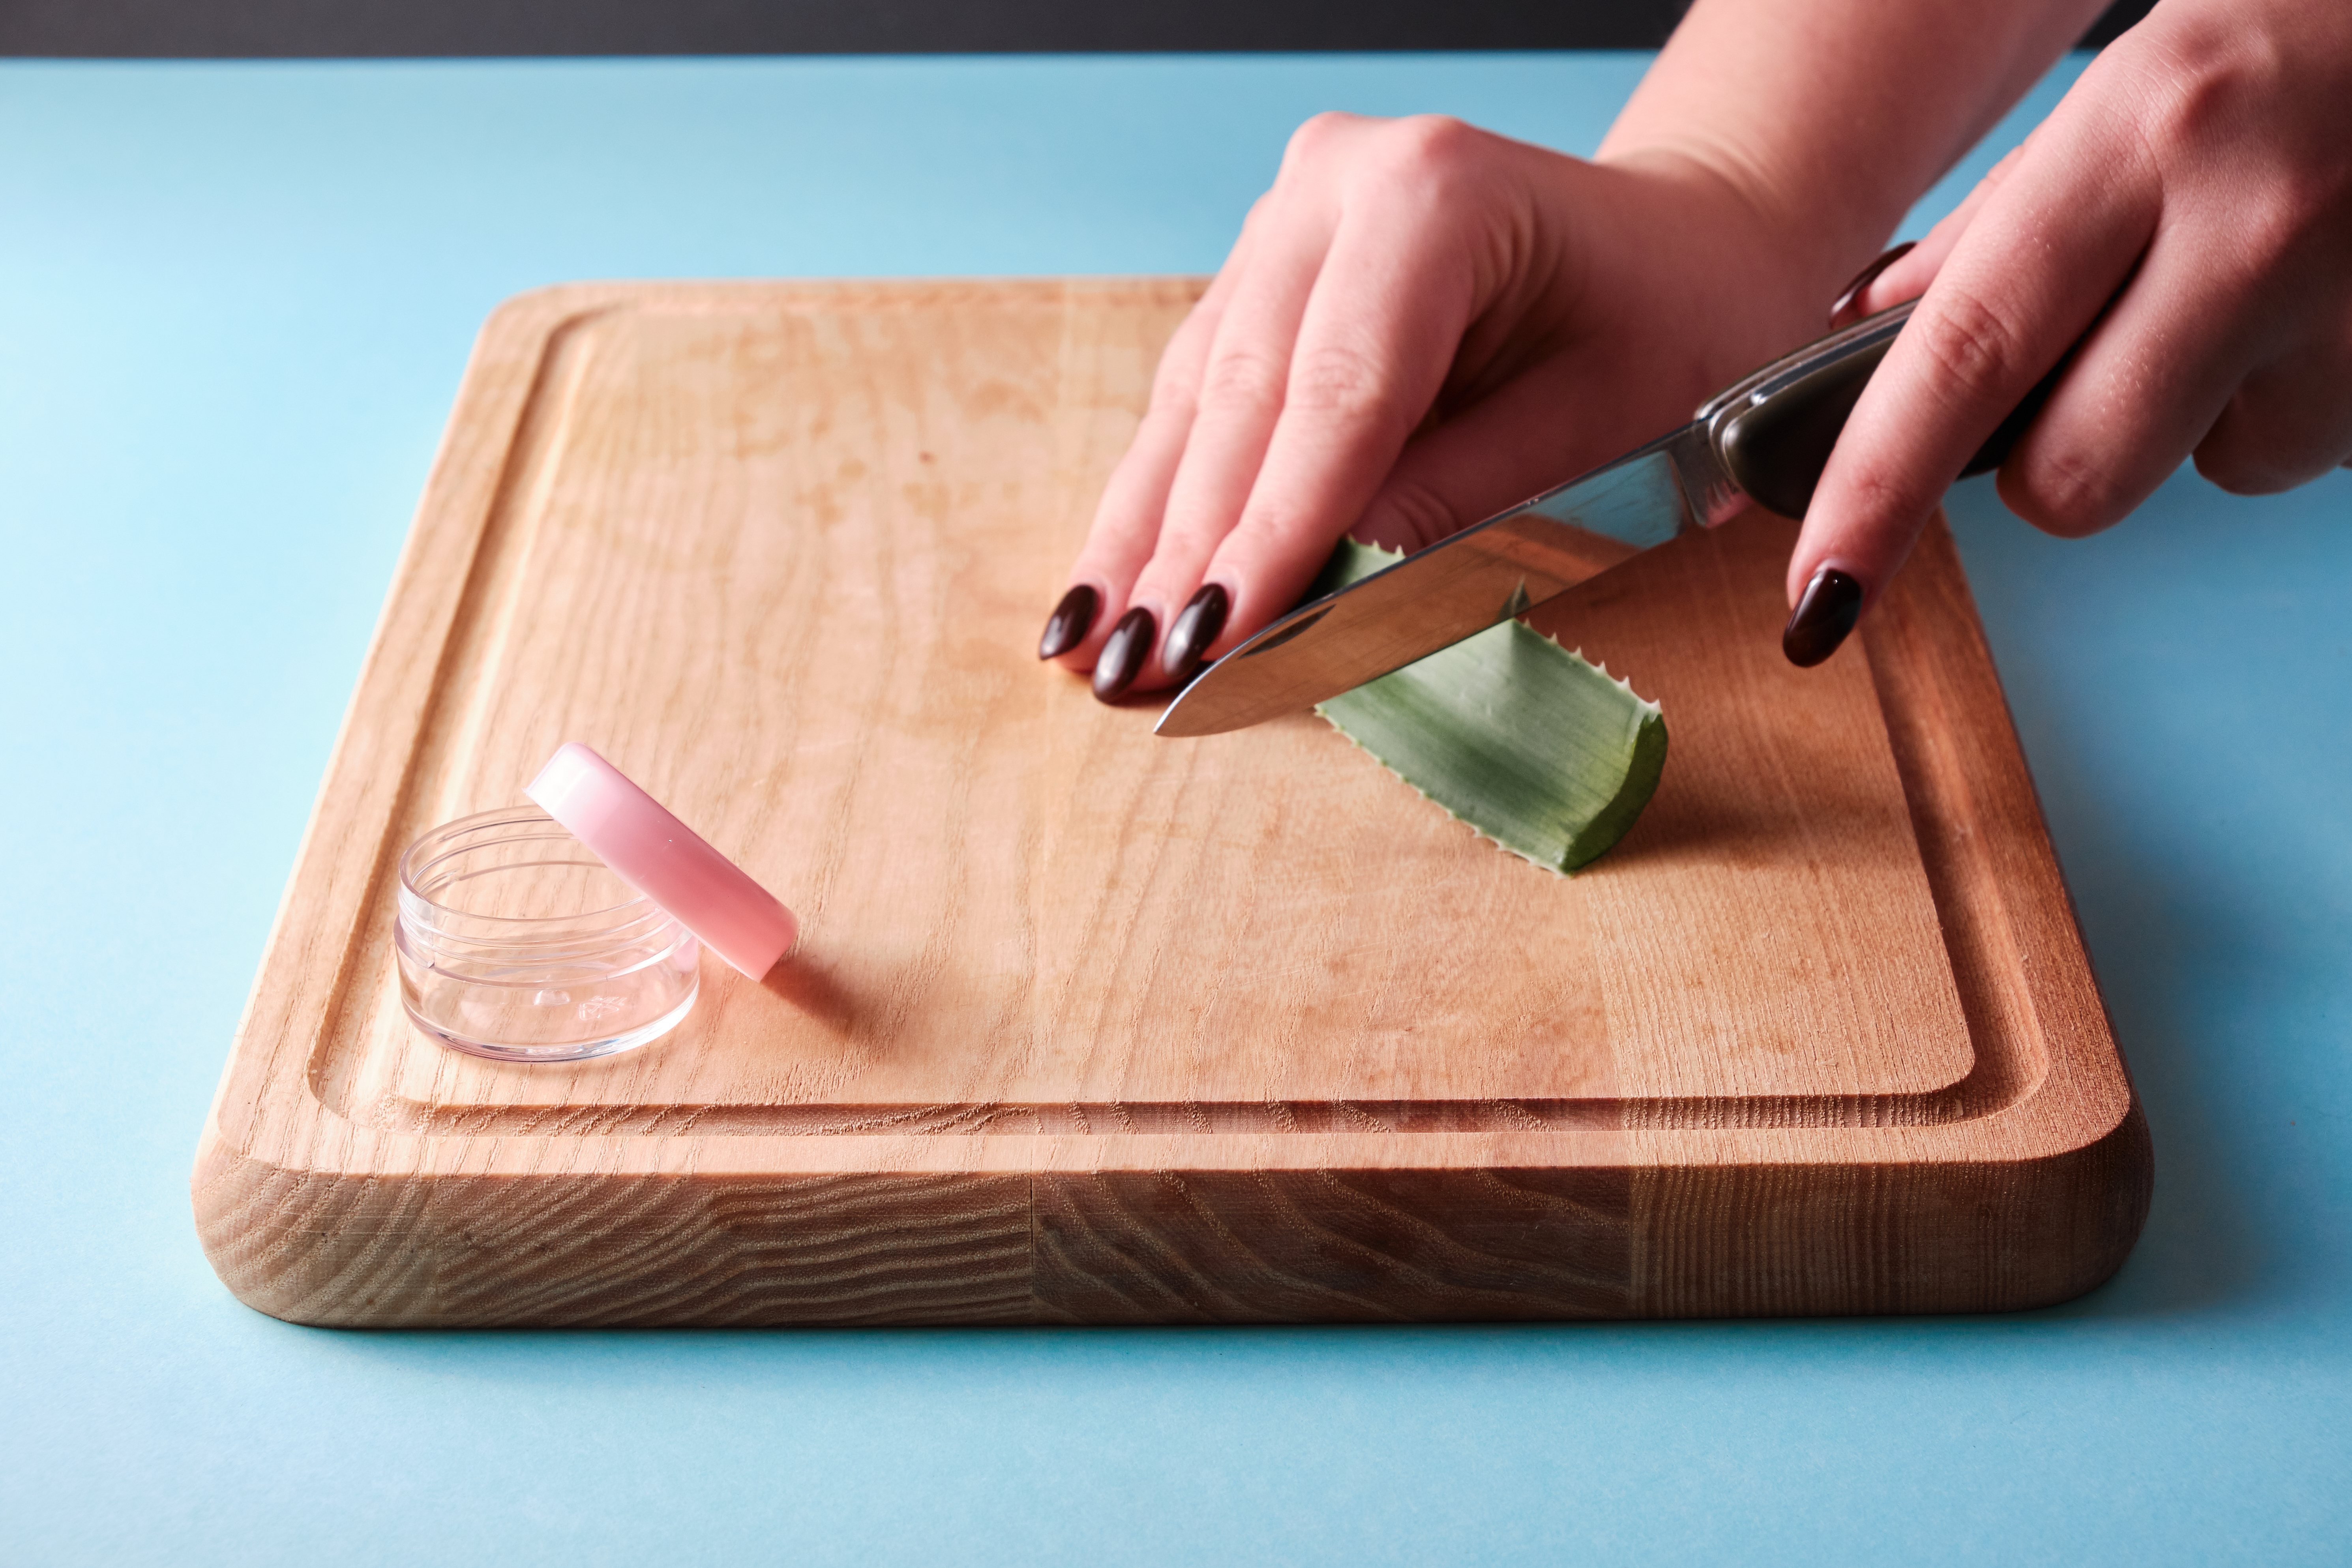 Cutting aloe vera slices with a knife next to a open empty box with pink cap, blue background